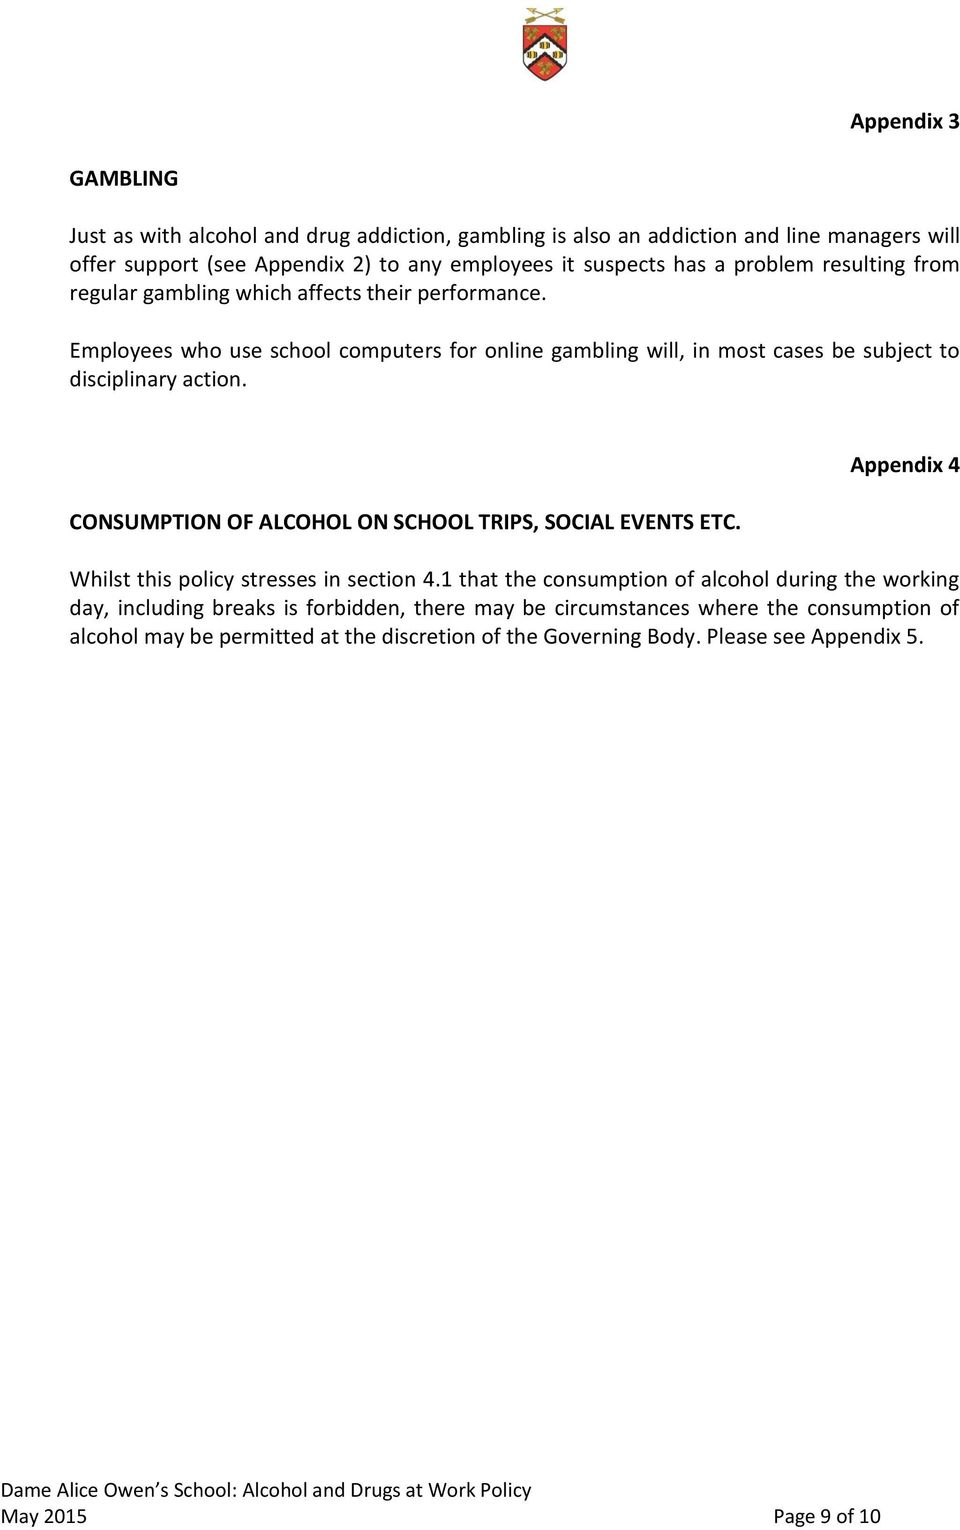 CONSUMPTION OF ALCOHOL ON SCHOOL TRIPS, SOCIAL EVENTS ETC. Appendix 4 Whilst this policy stresses in section 4.